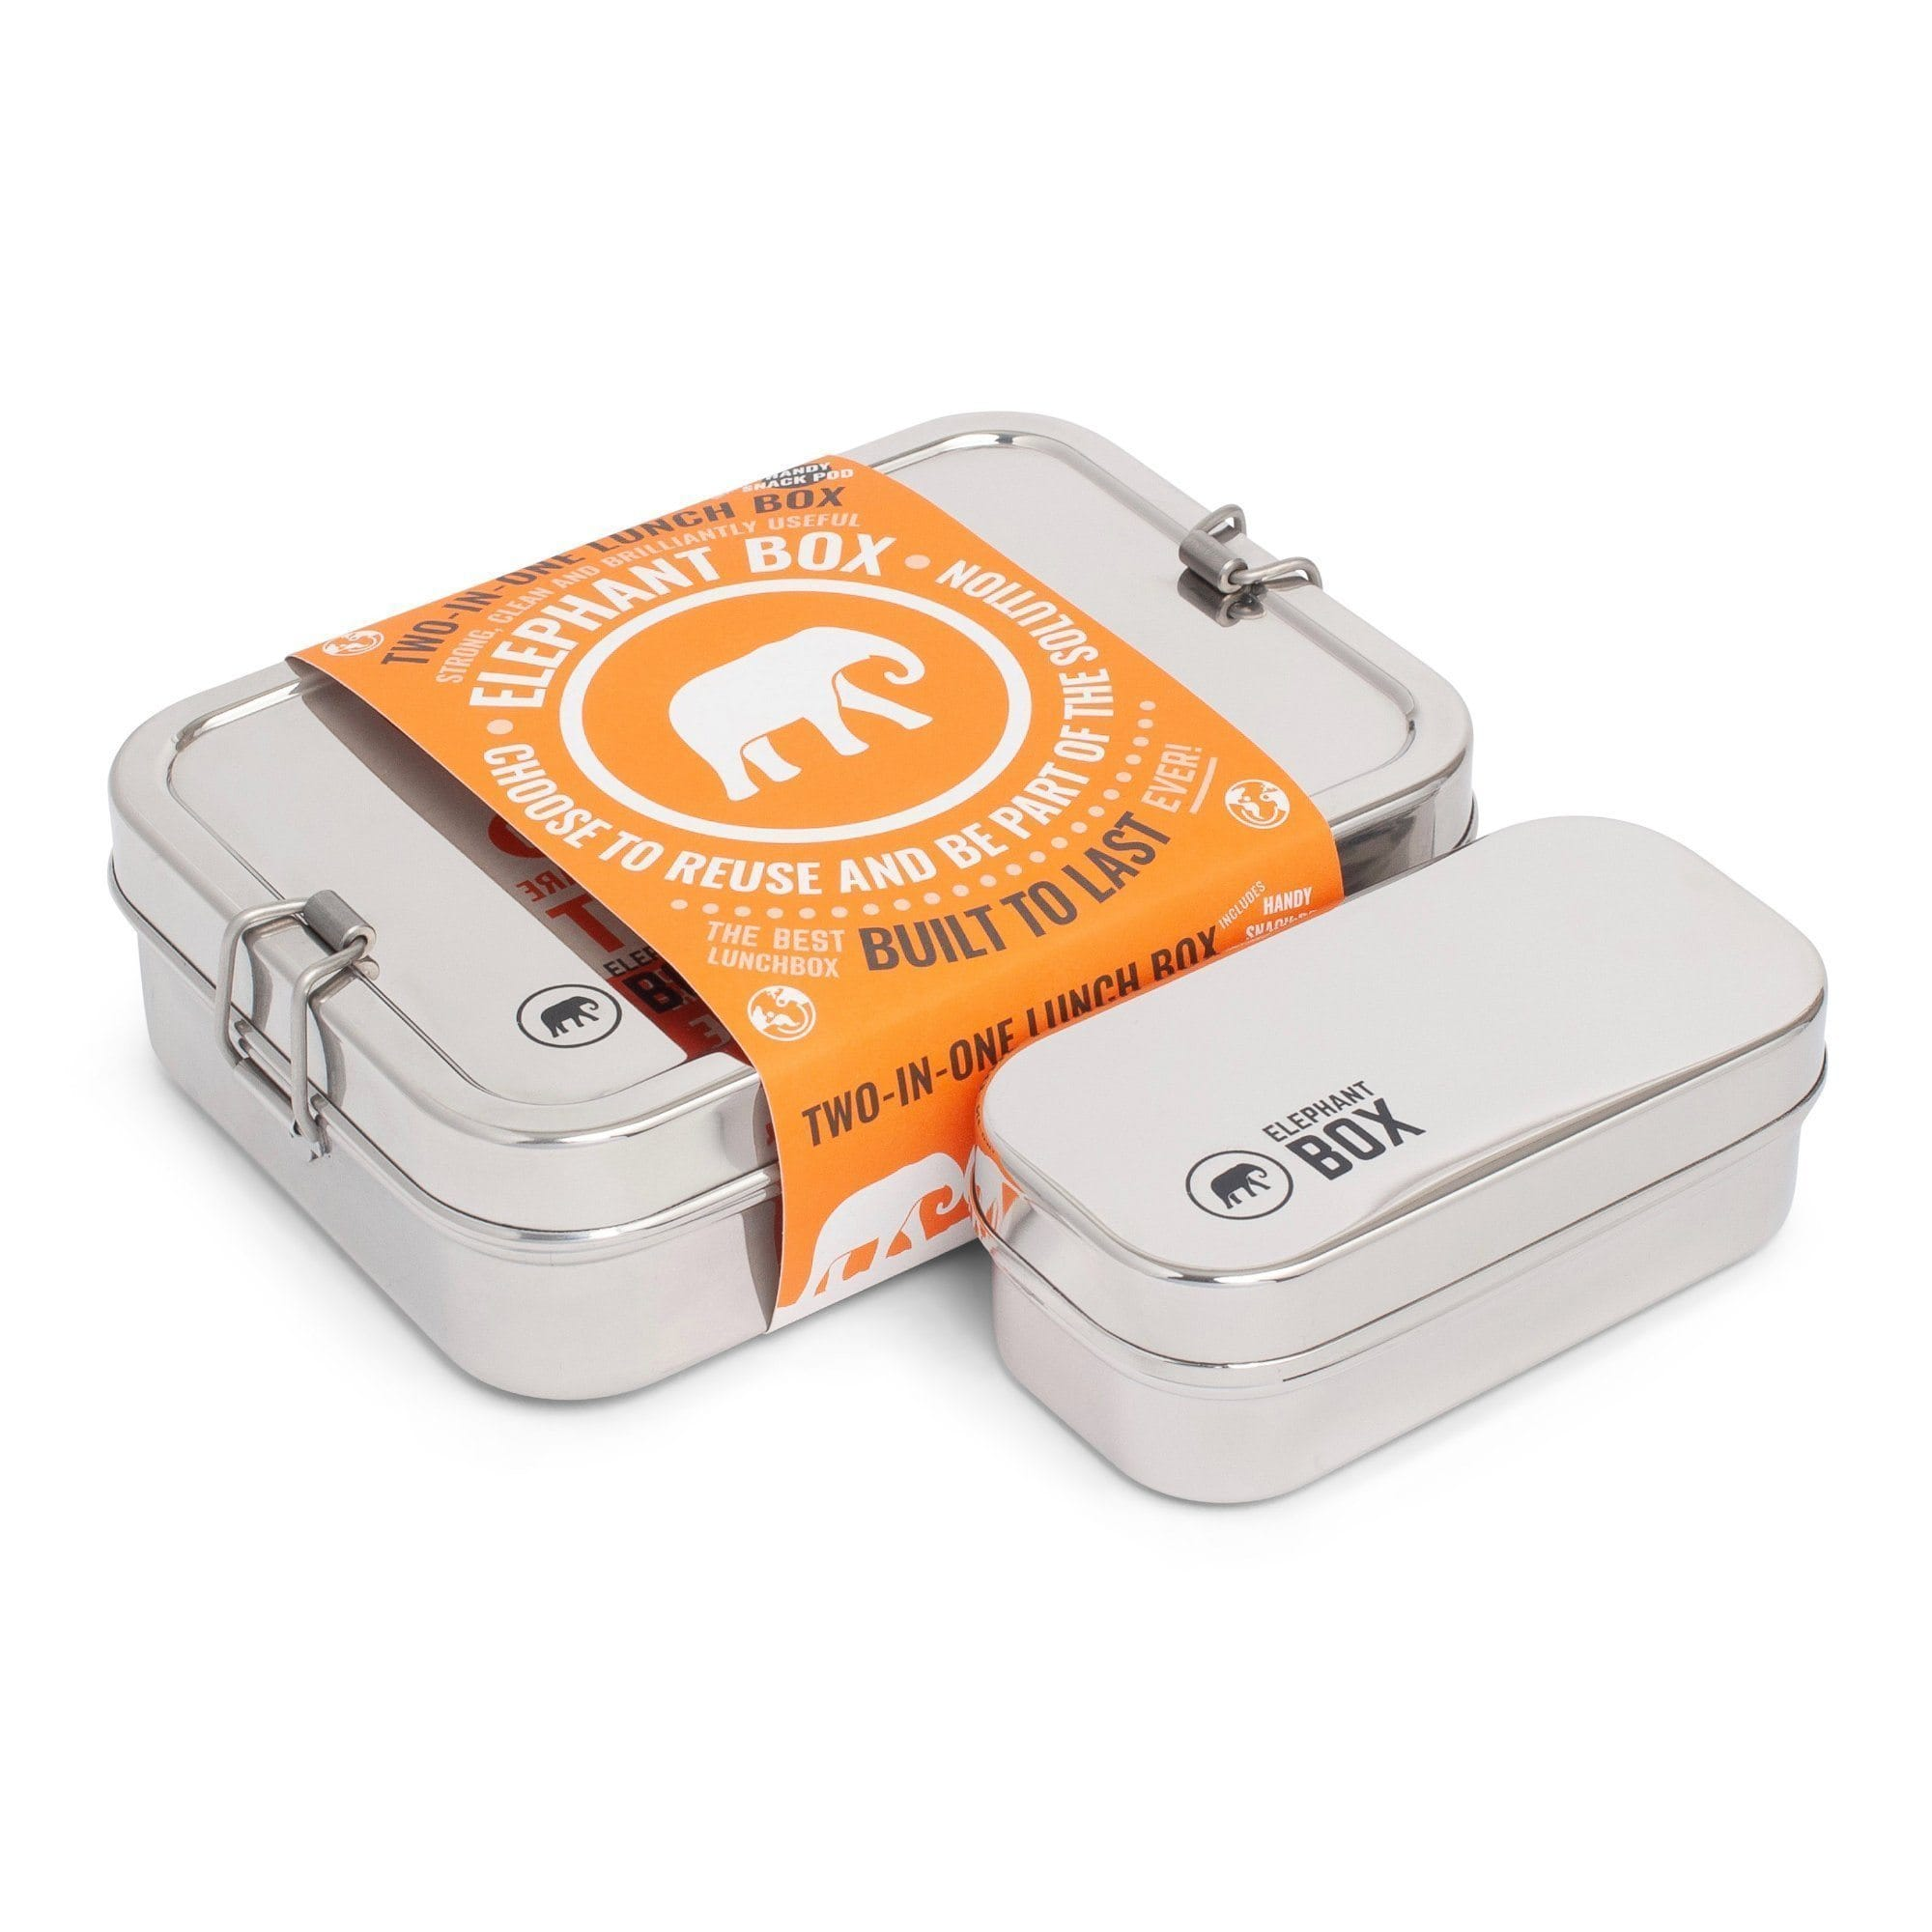 The Elephant Box - 2 in 1 Lunchbox